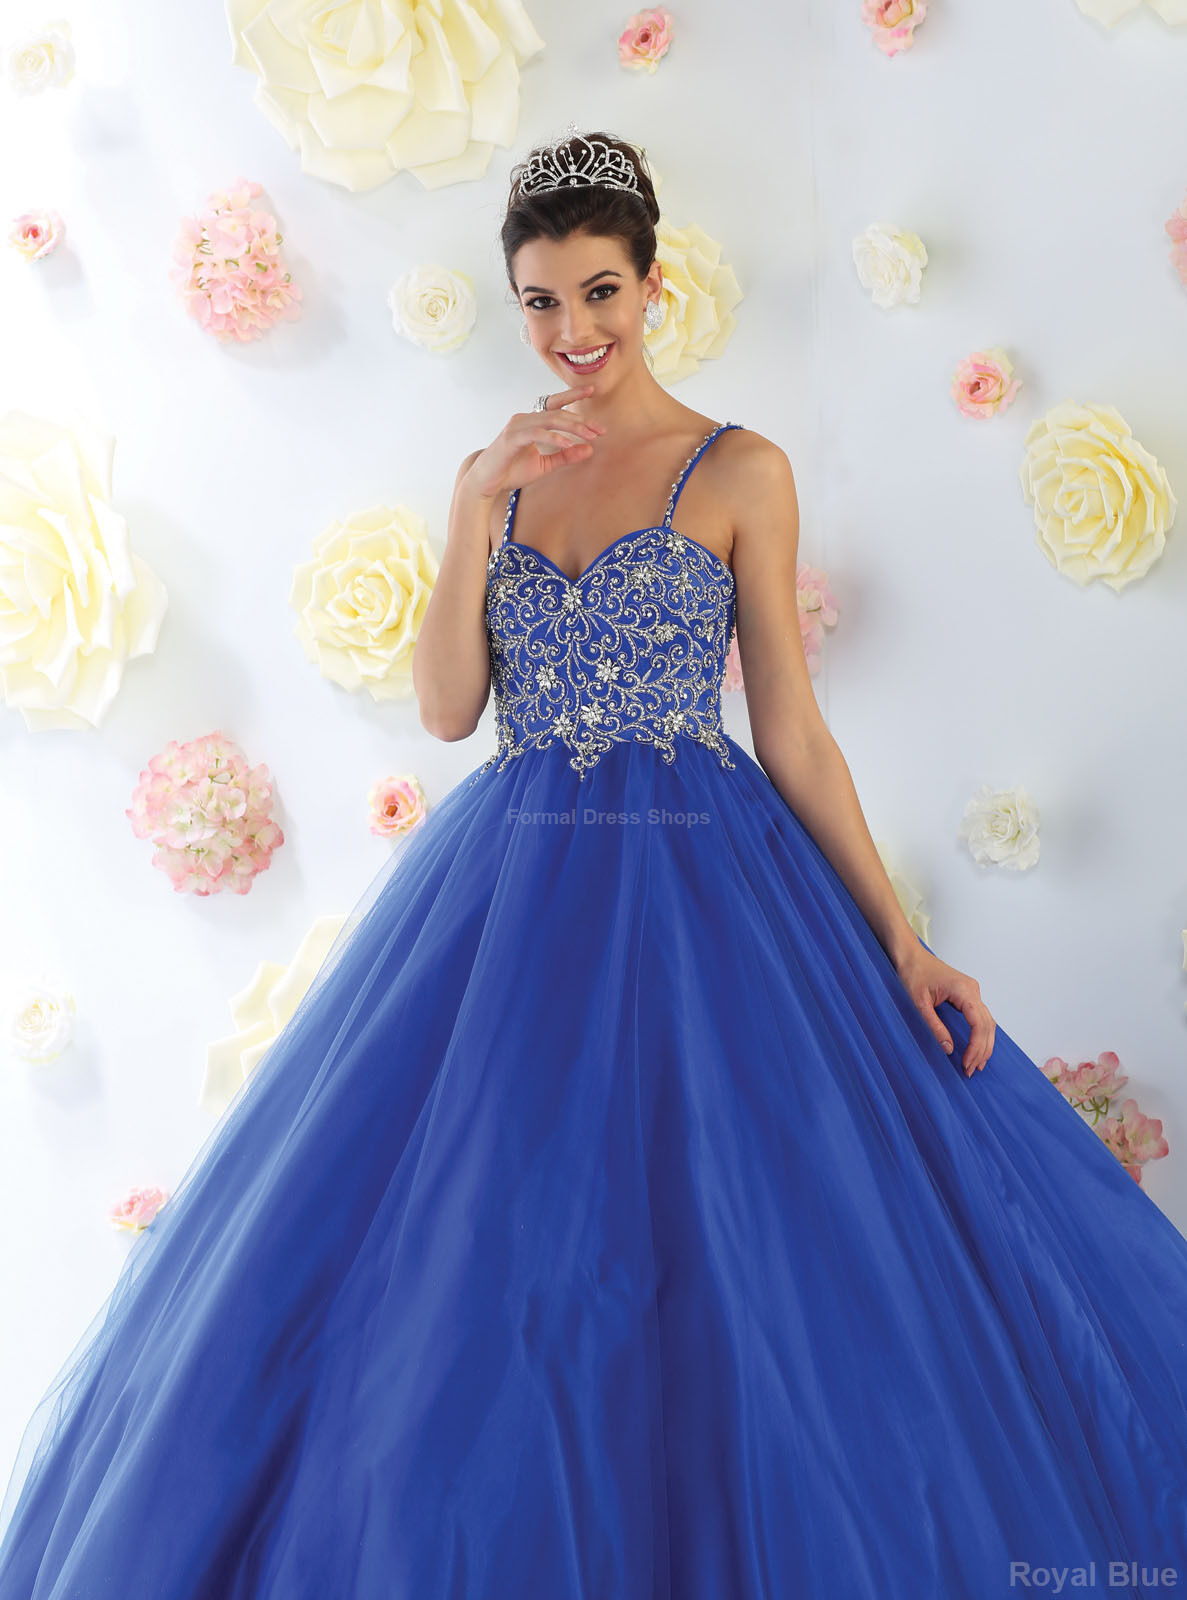 929f3335f6031 This listing is for a Brand New MASQUERADE Dress   FDS85. In Stock